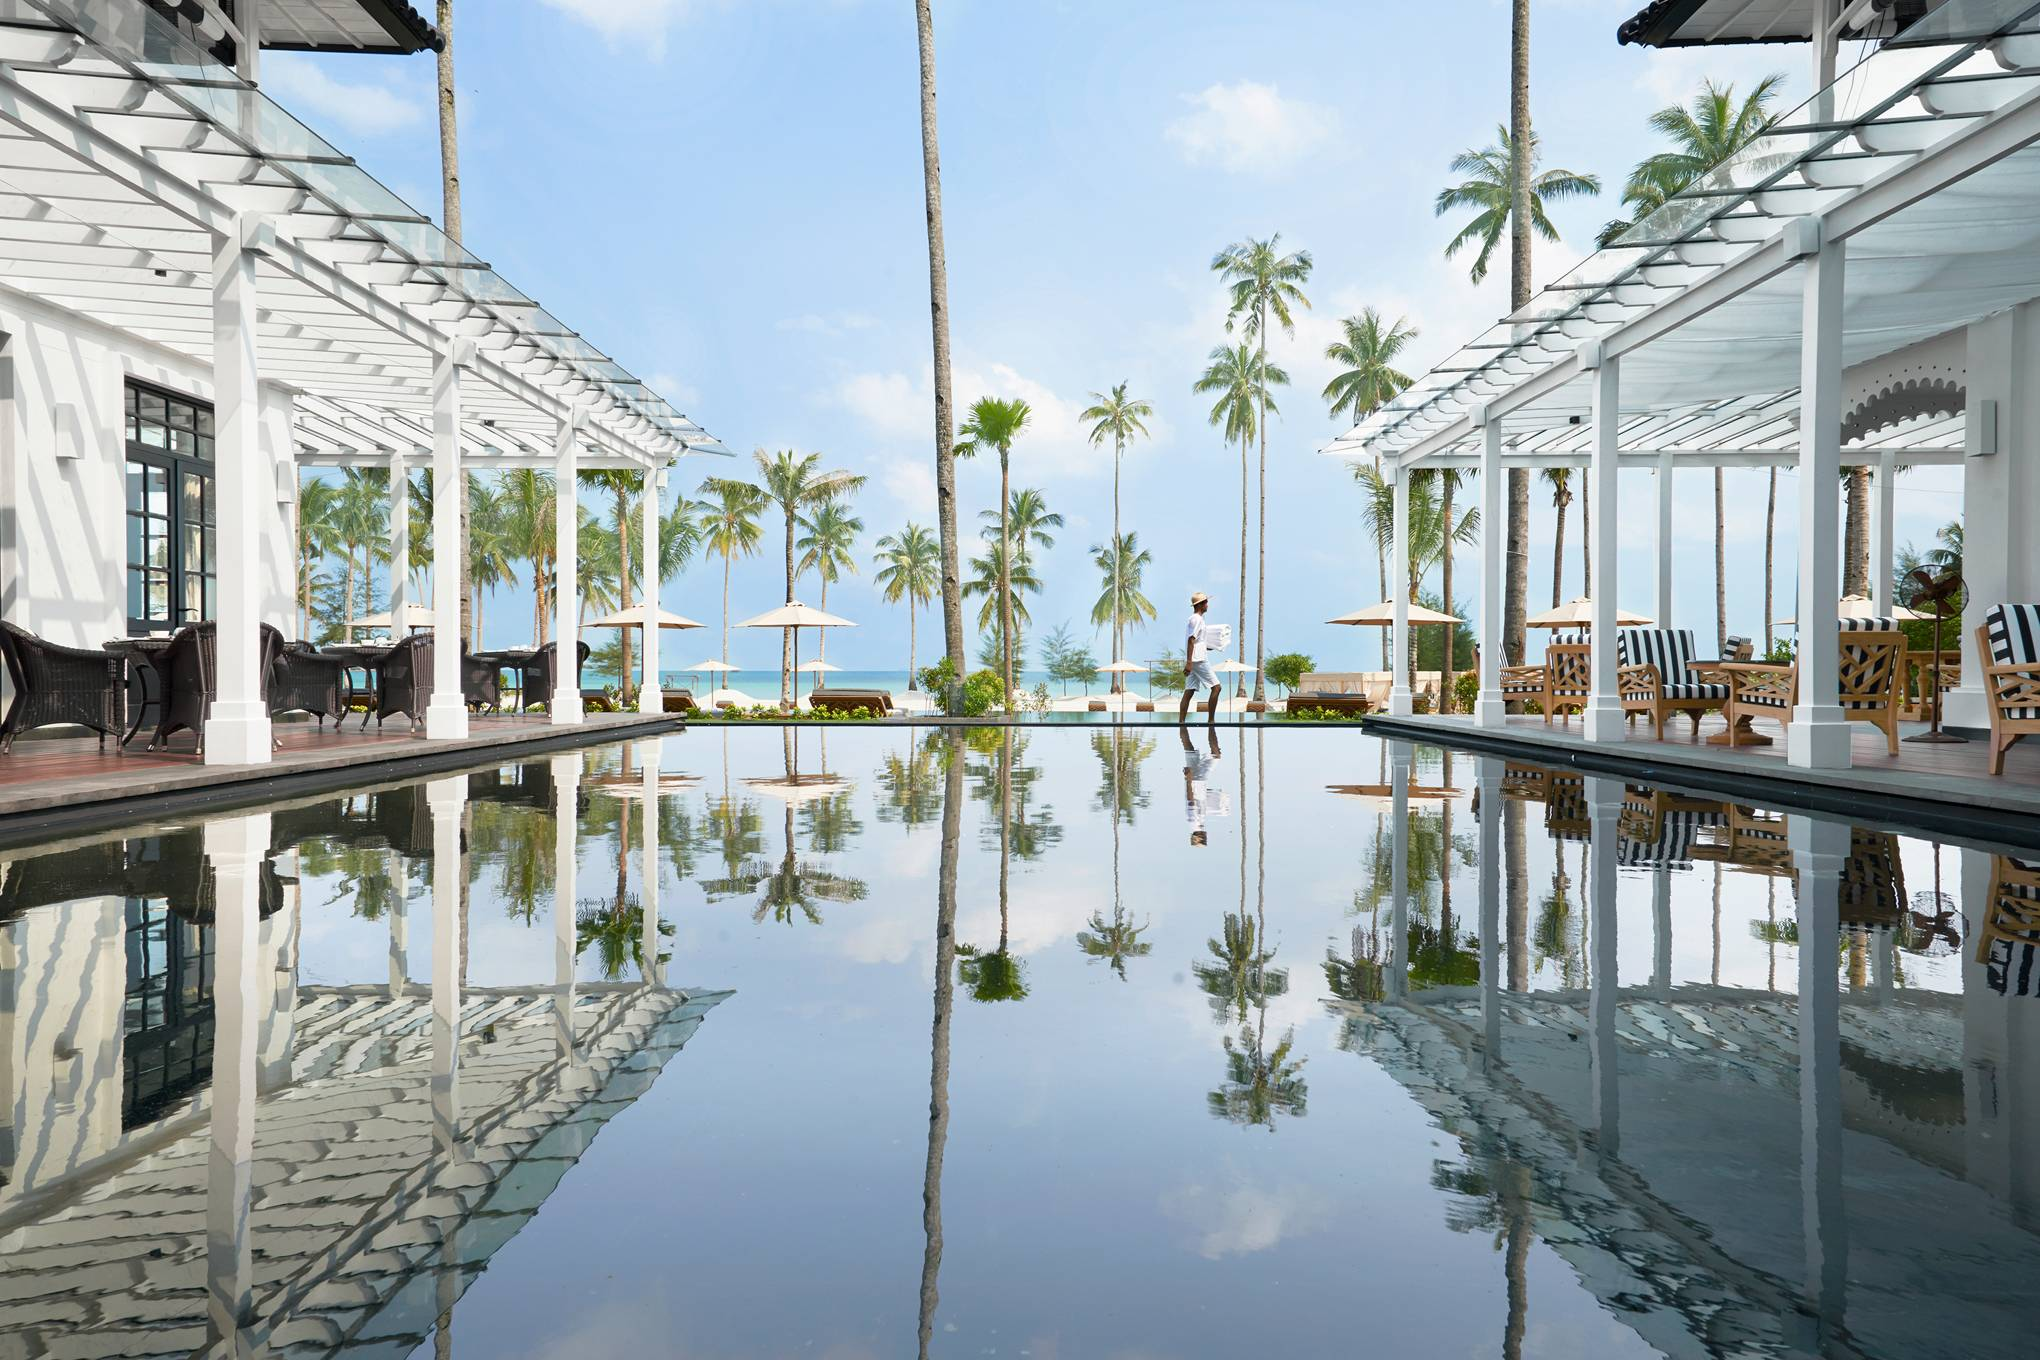 Hotels With Swimming Pools - The Best Swimming Pools In